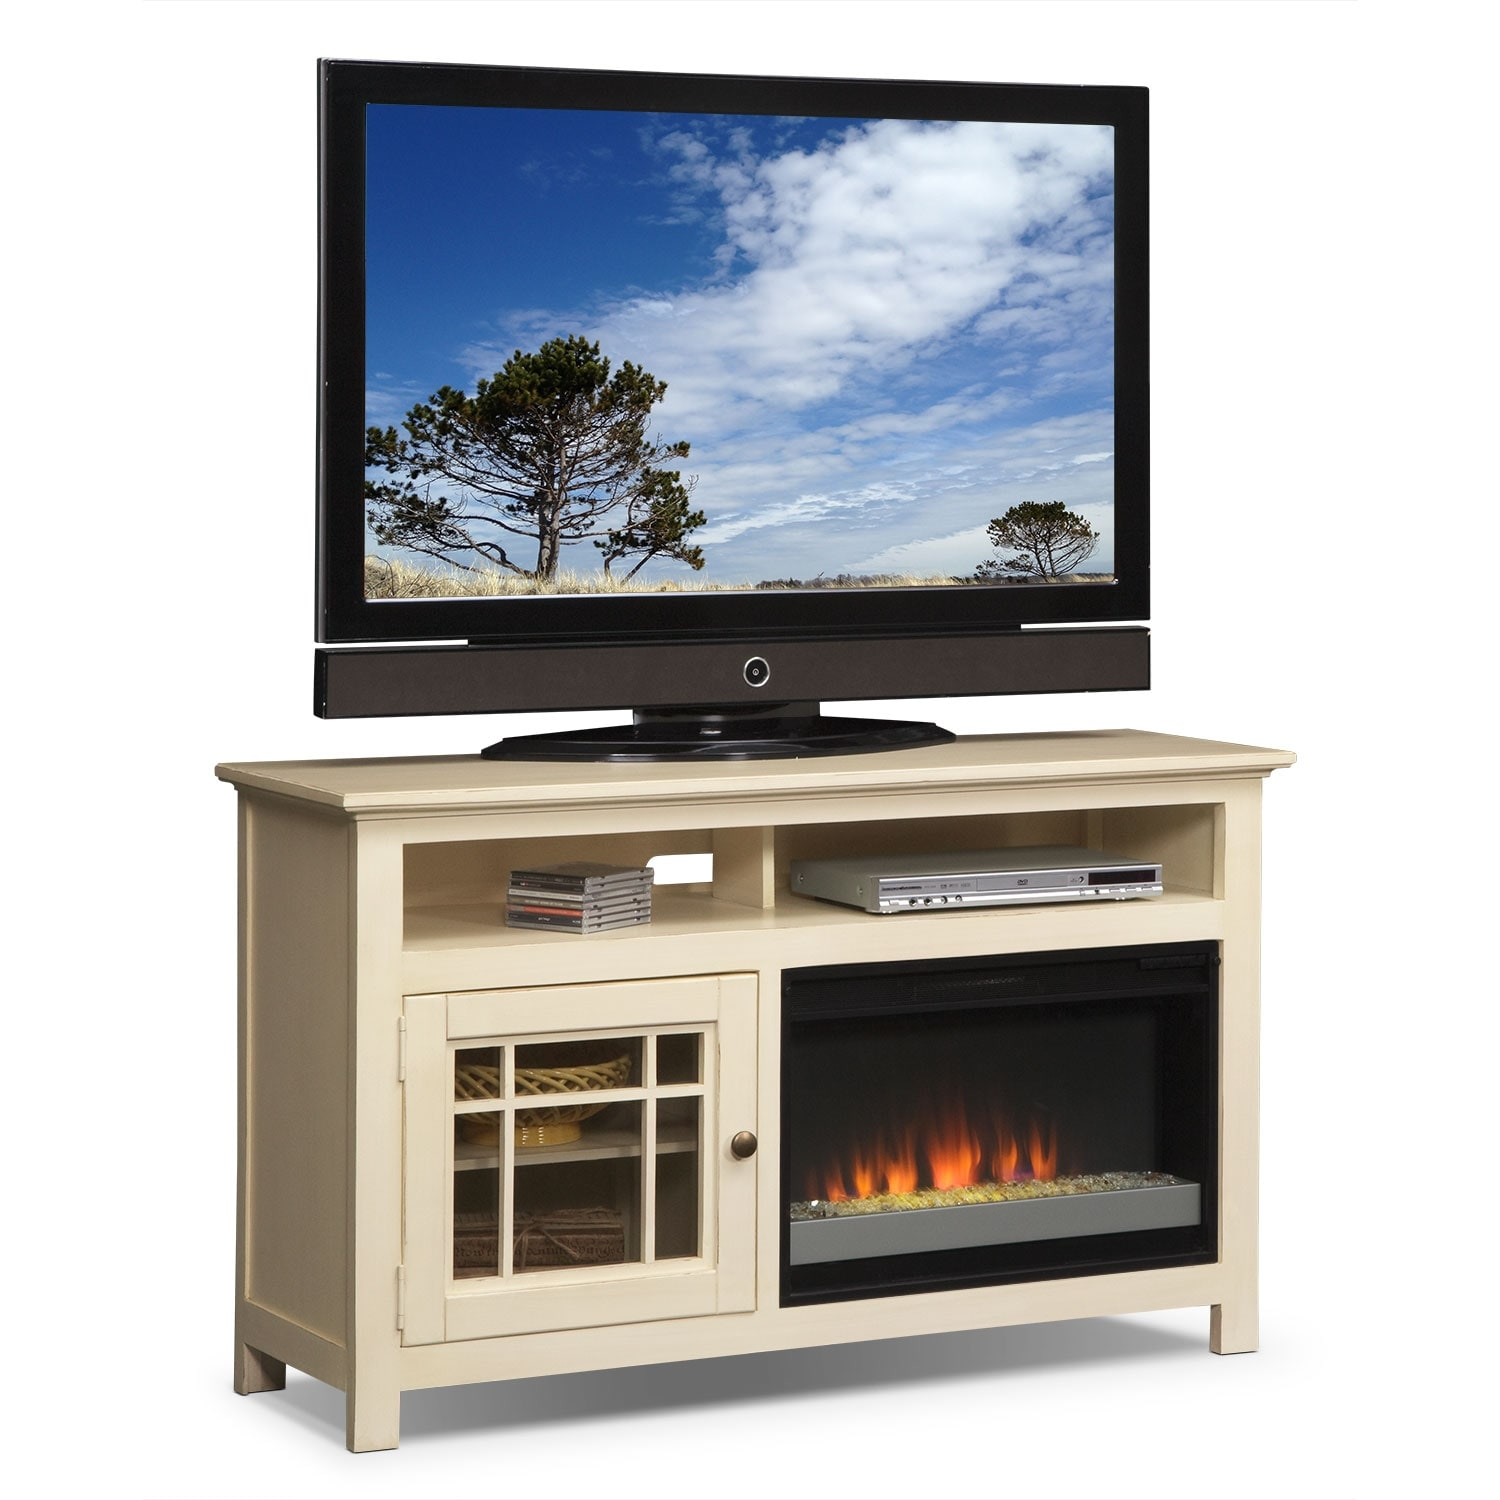 "Merrick 54"" Fireplace TV Stand with Contemporary Insert - White"